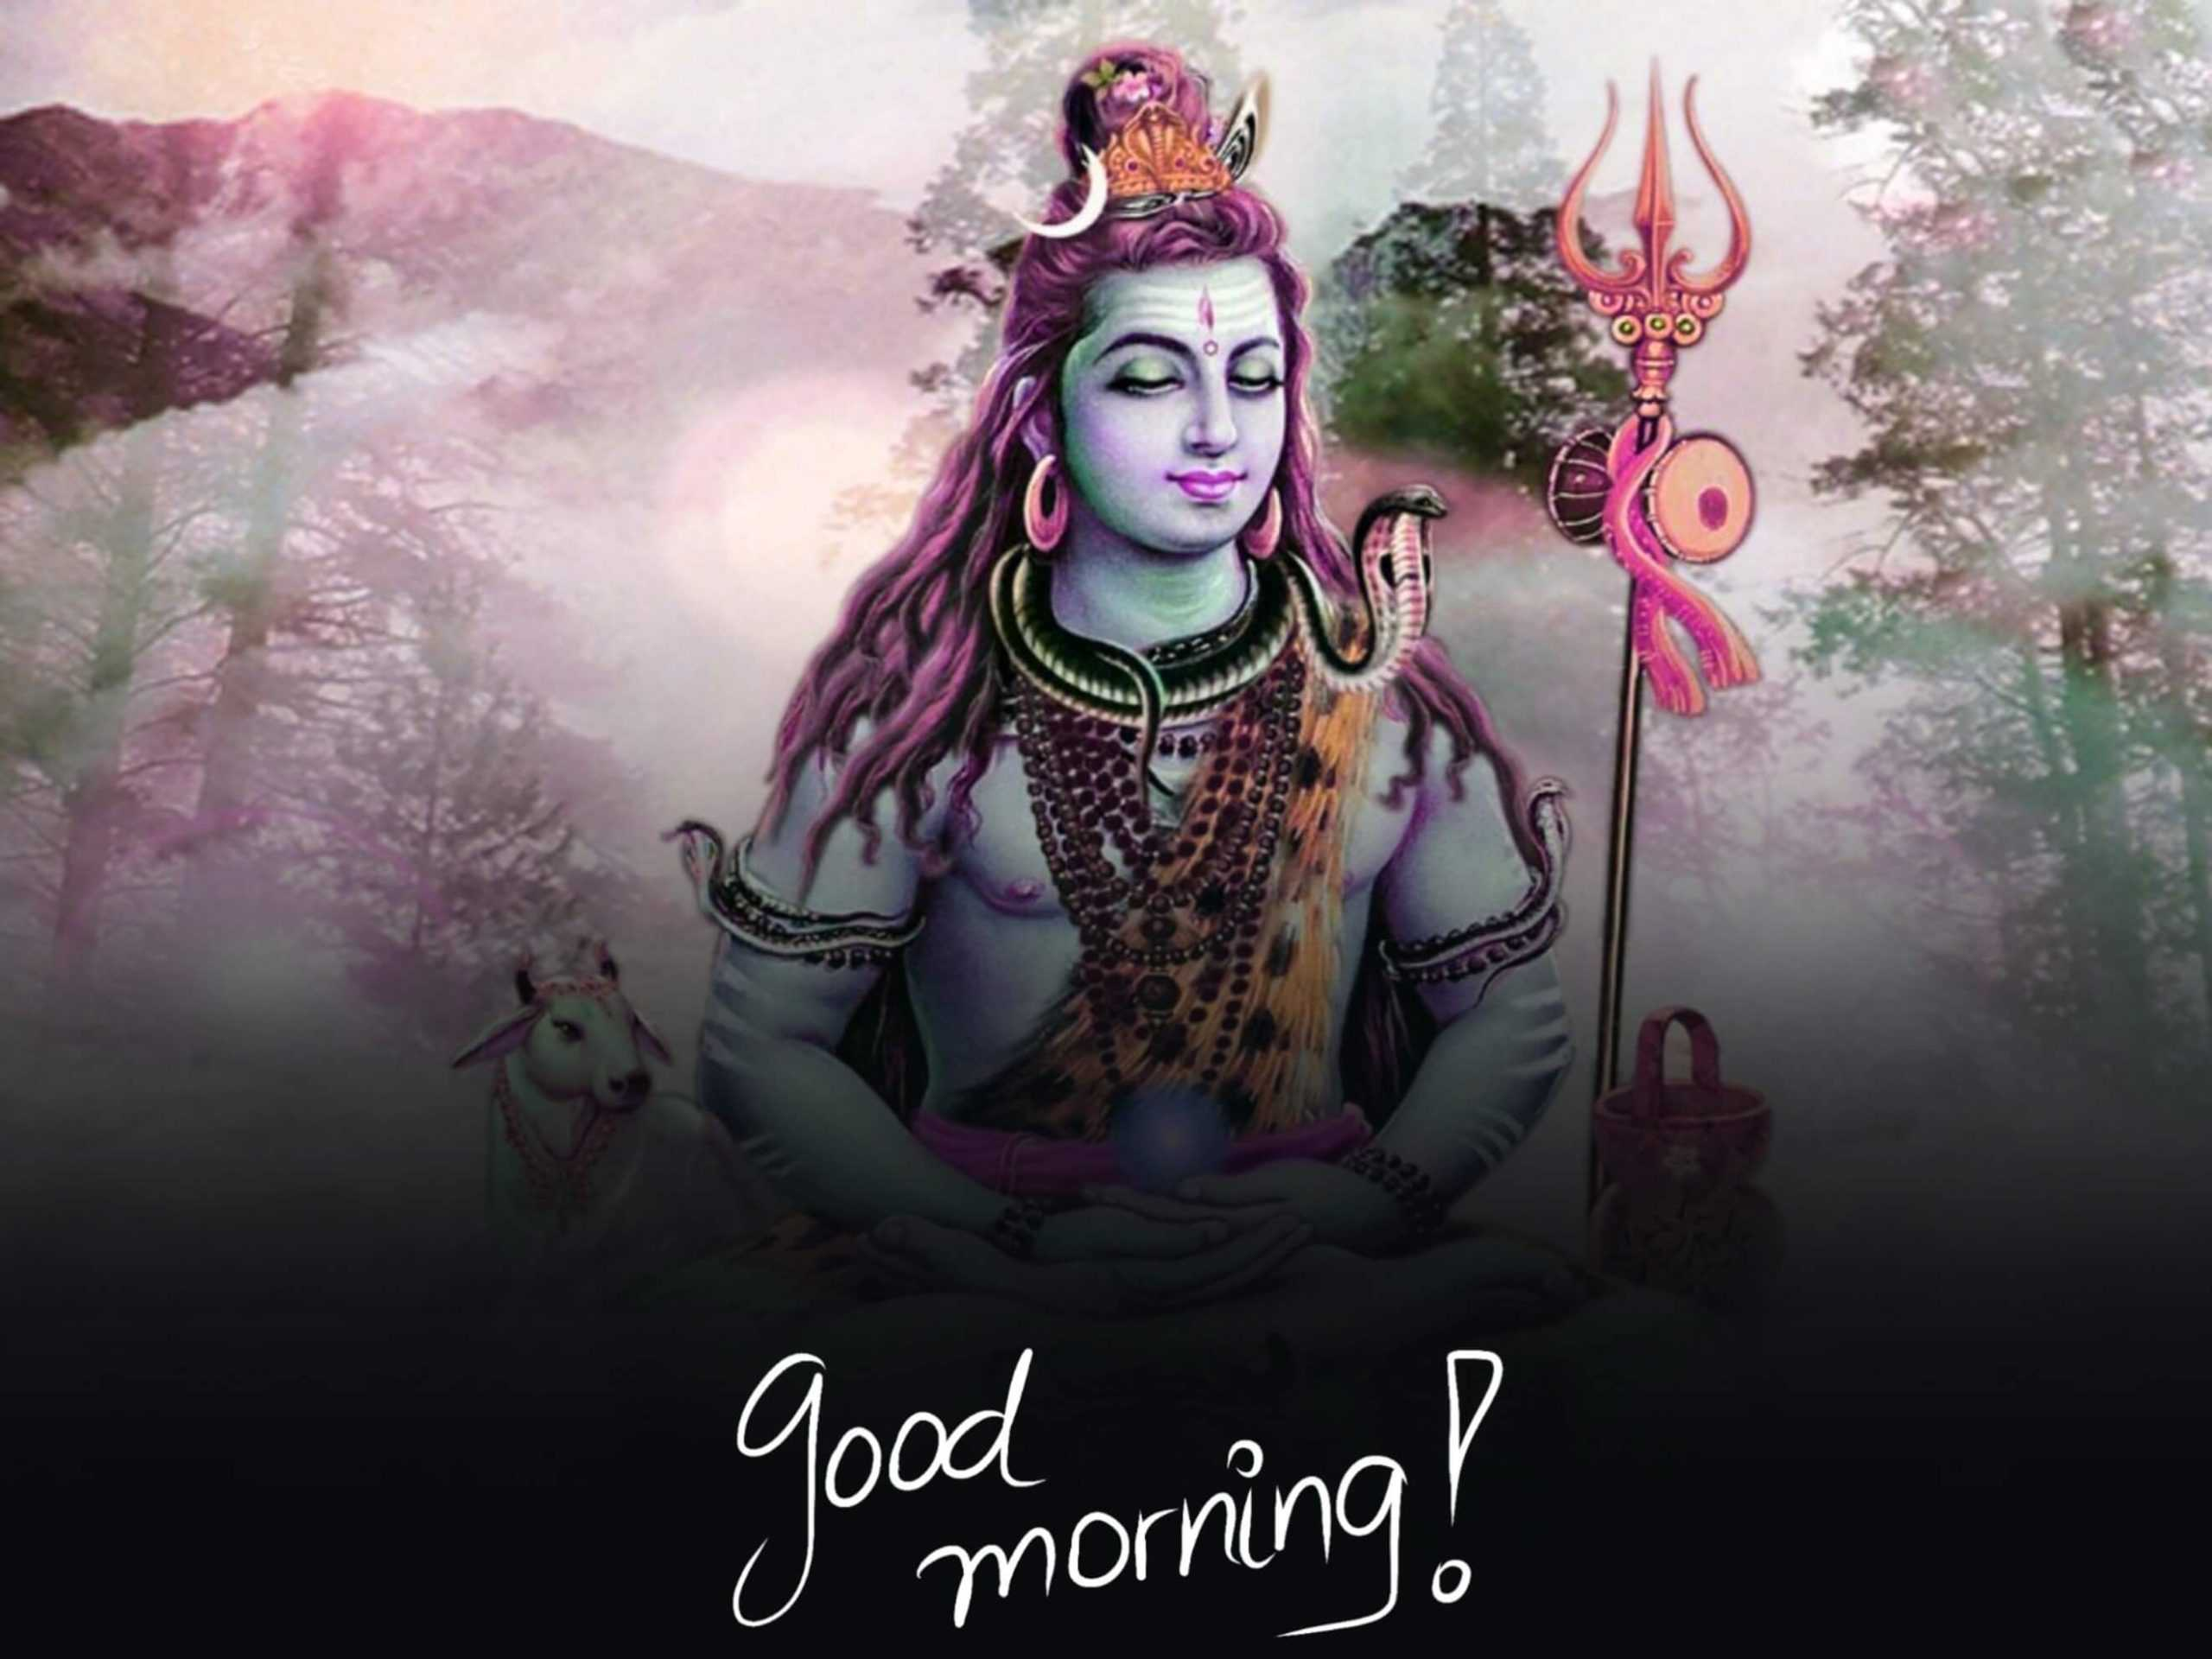 Download Free Lord Shiva Wallpapers For Mobile - Download Free Lord Shiva Wallpapers For Mobile